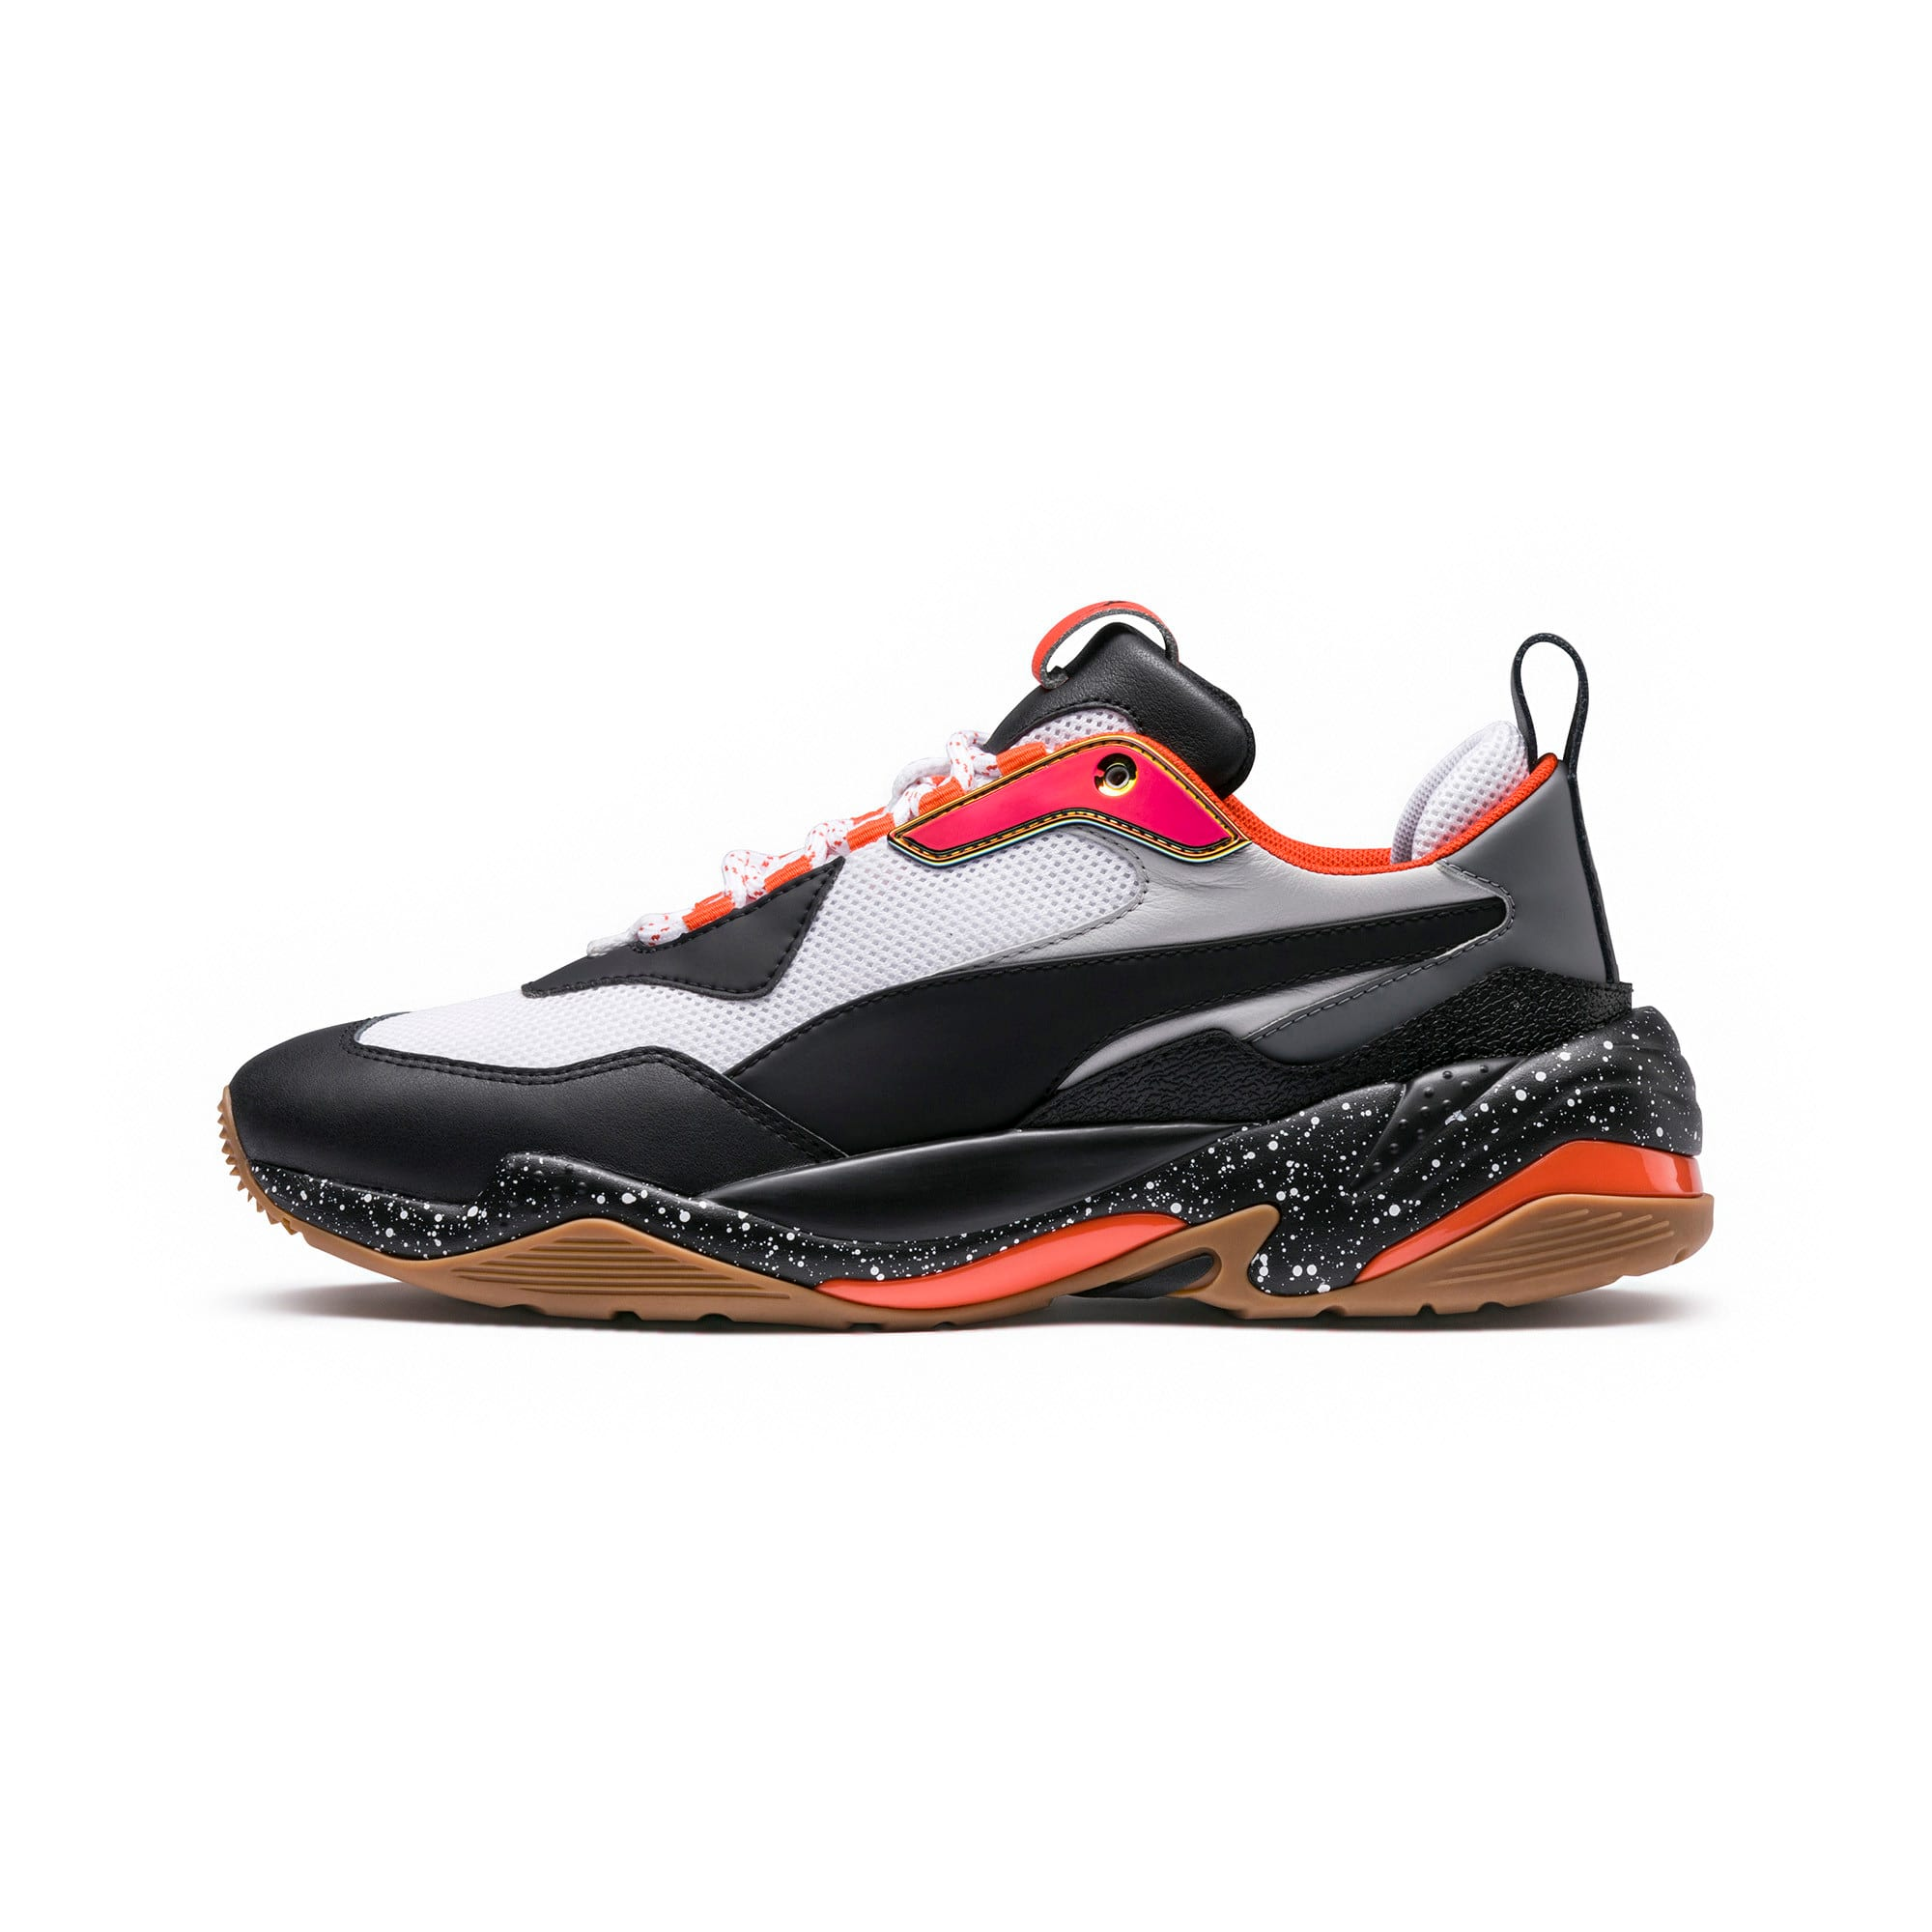 miglior servizio c1d32 d99d9 Thunder Electric Sneakers